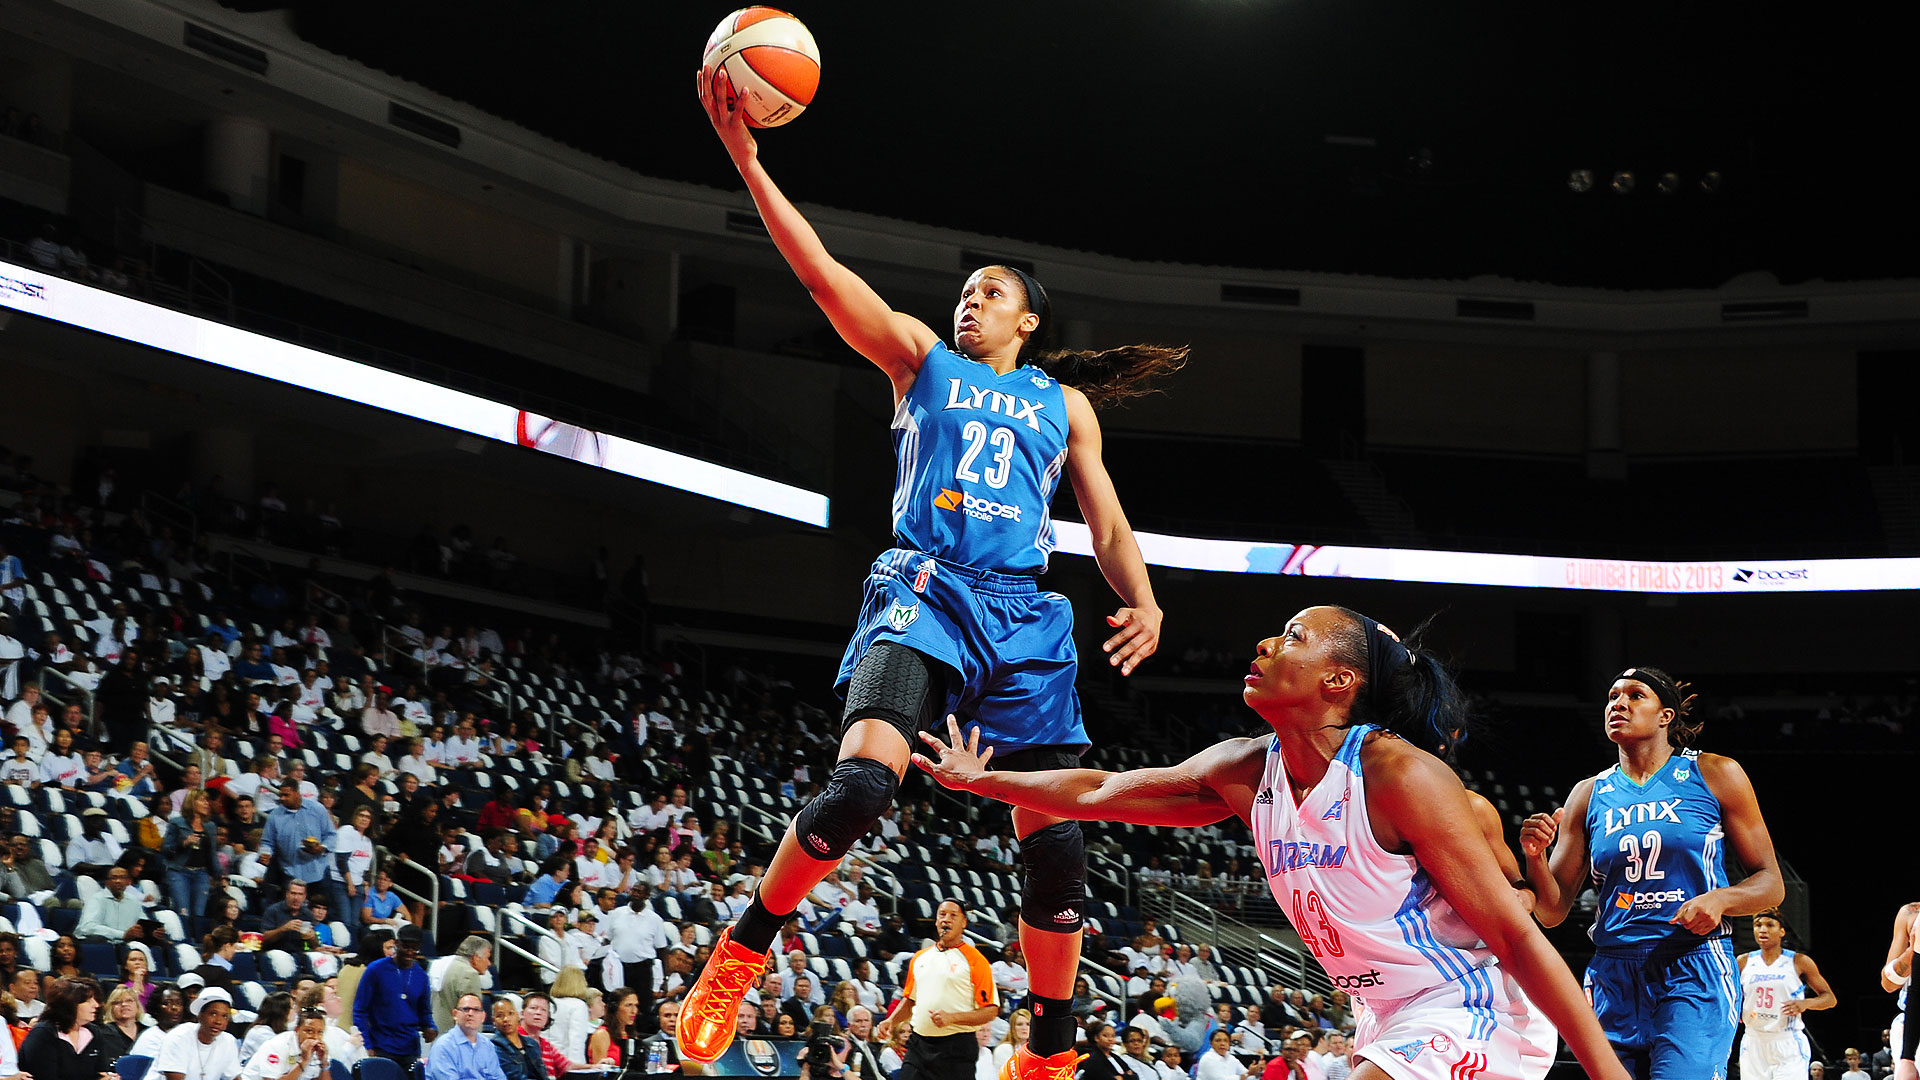 Rank: Top 10 WNBA playoff moments - SportsNation - ESPN